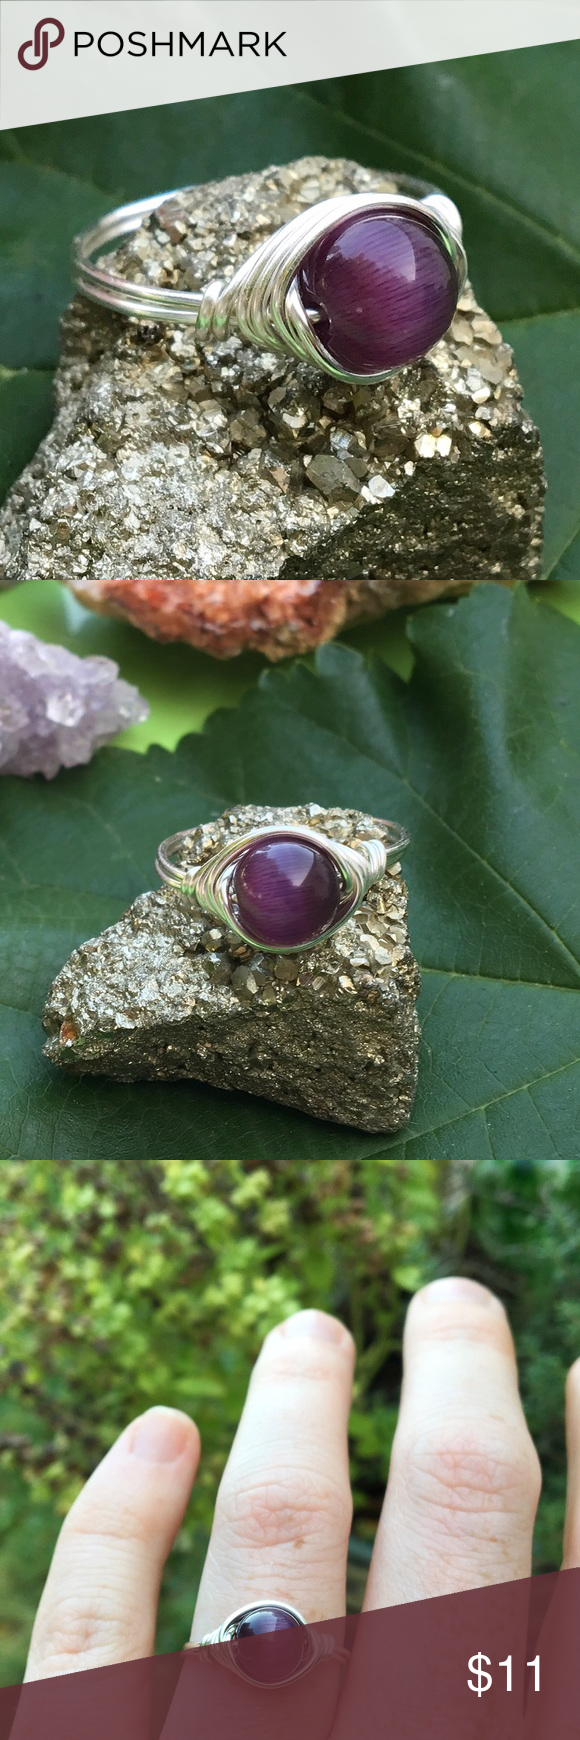 Sterling plated handmade Glass cats eye ring ❣ *Can be made any size *hypoallergenic/non tarnishable sterling silver plated wire *8mm Purple glass cats eye bead *handmade with lots of love ❤️ #ring #rings #jewelry #hippie #bohemian #handmade #wirewrap #gift #catseye #glassring #customjewelry handmade Jewelry Rings